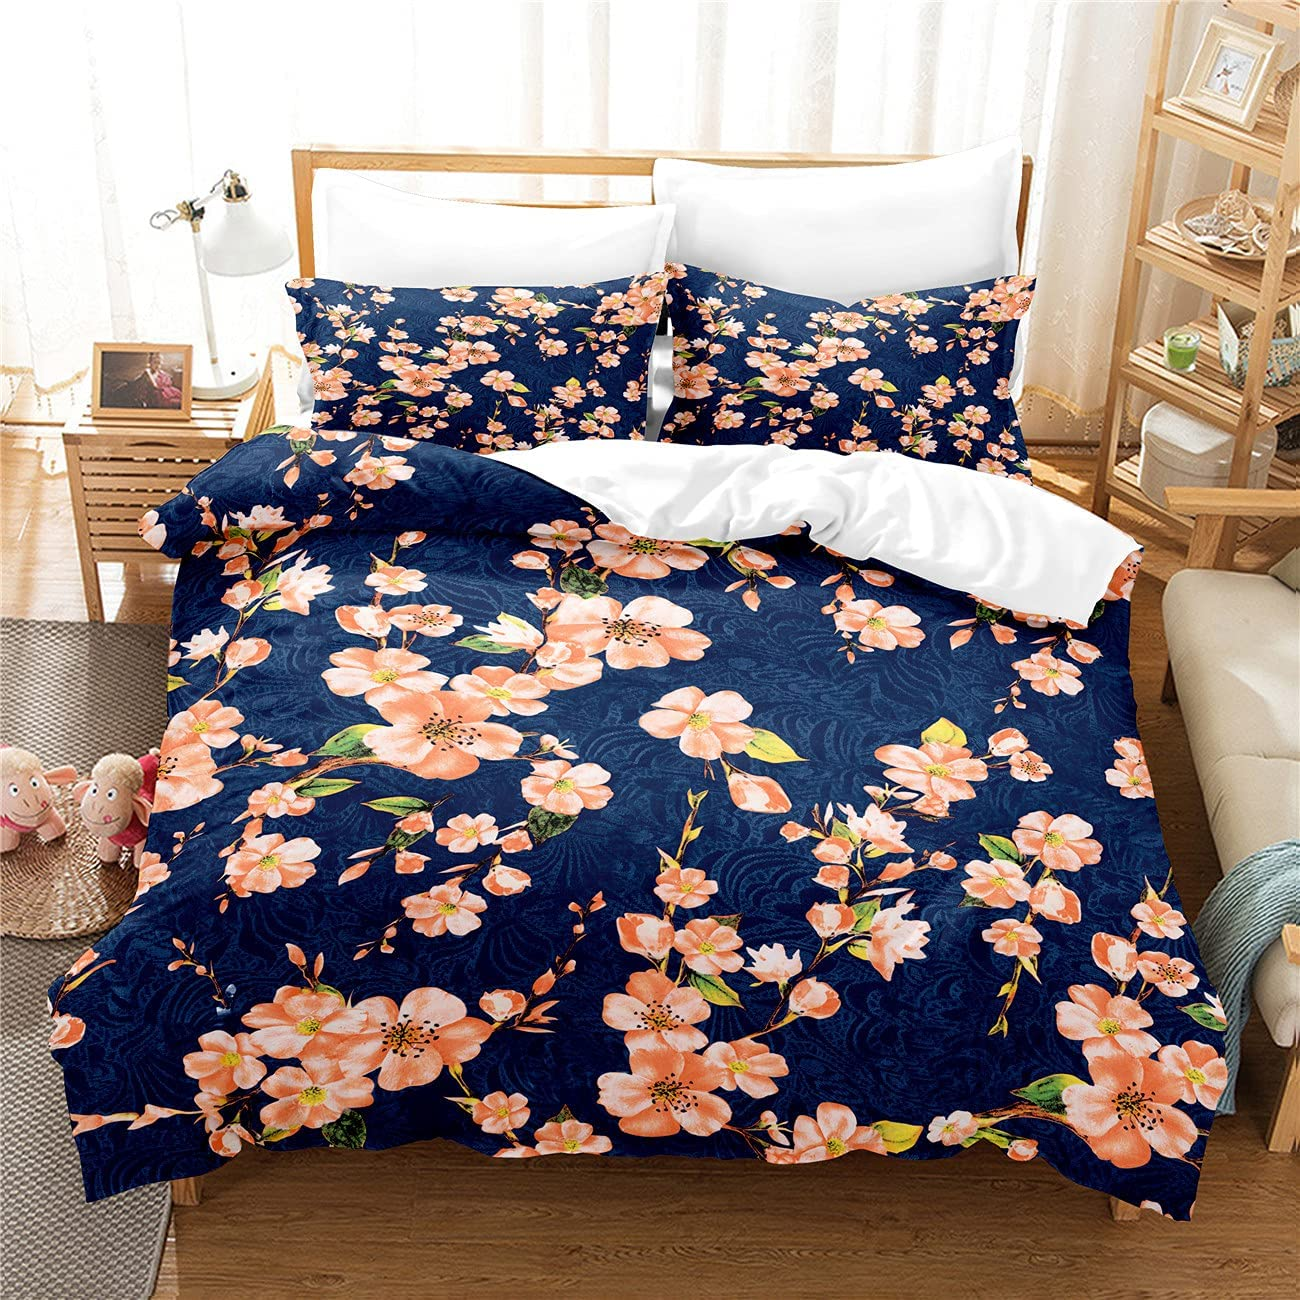 MANXI Flower Printing Double Quilt 2021new shipping free shipping Decorative Cover Bedroom National products Bed